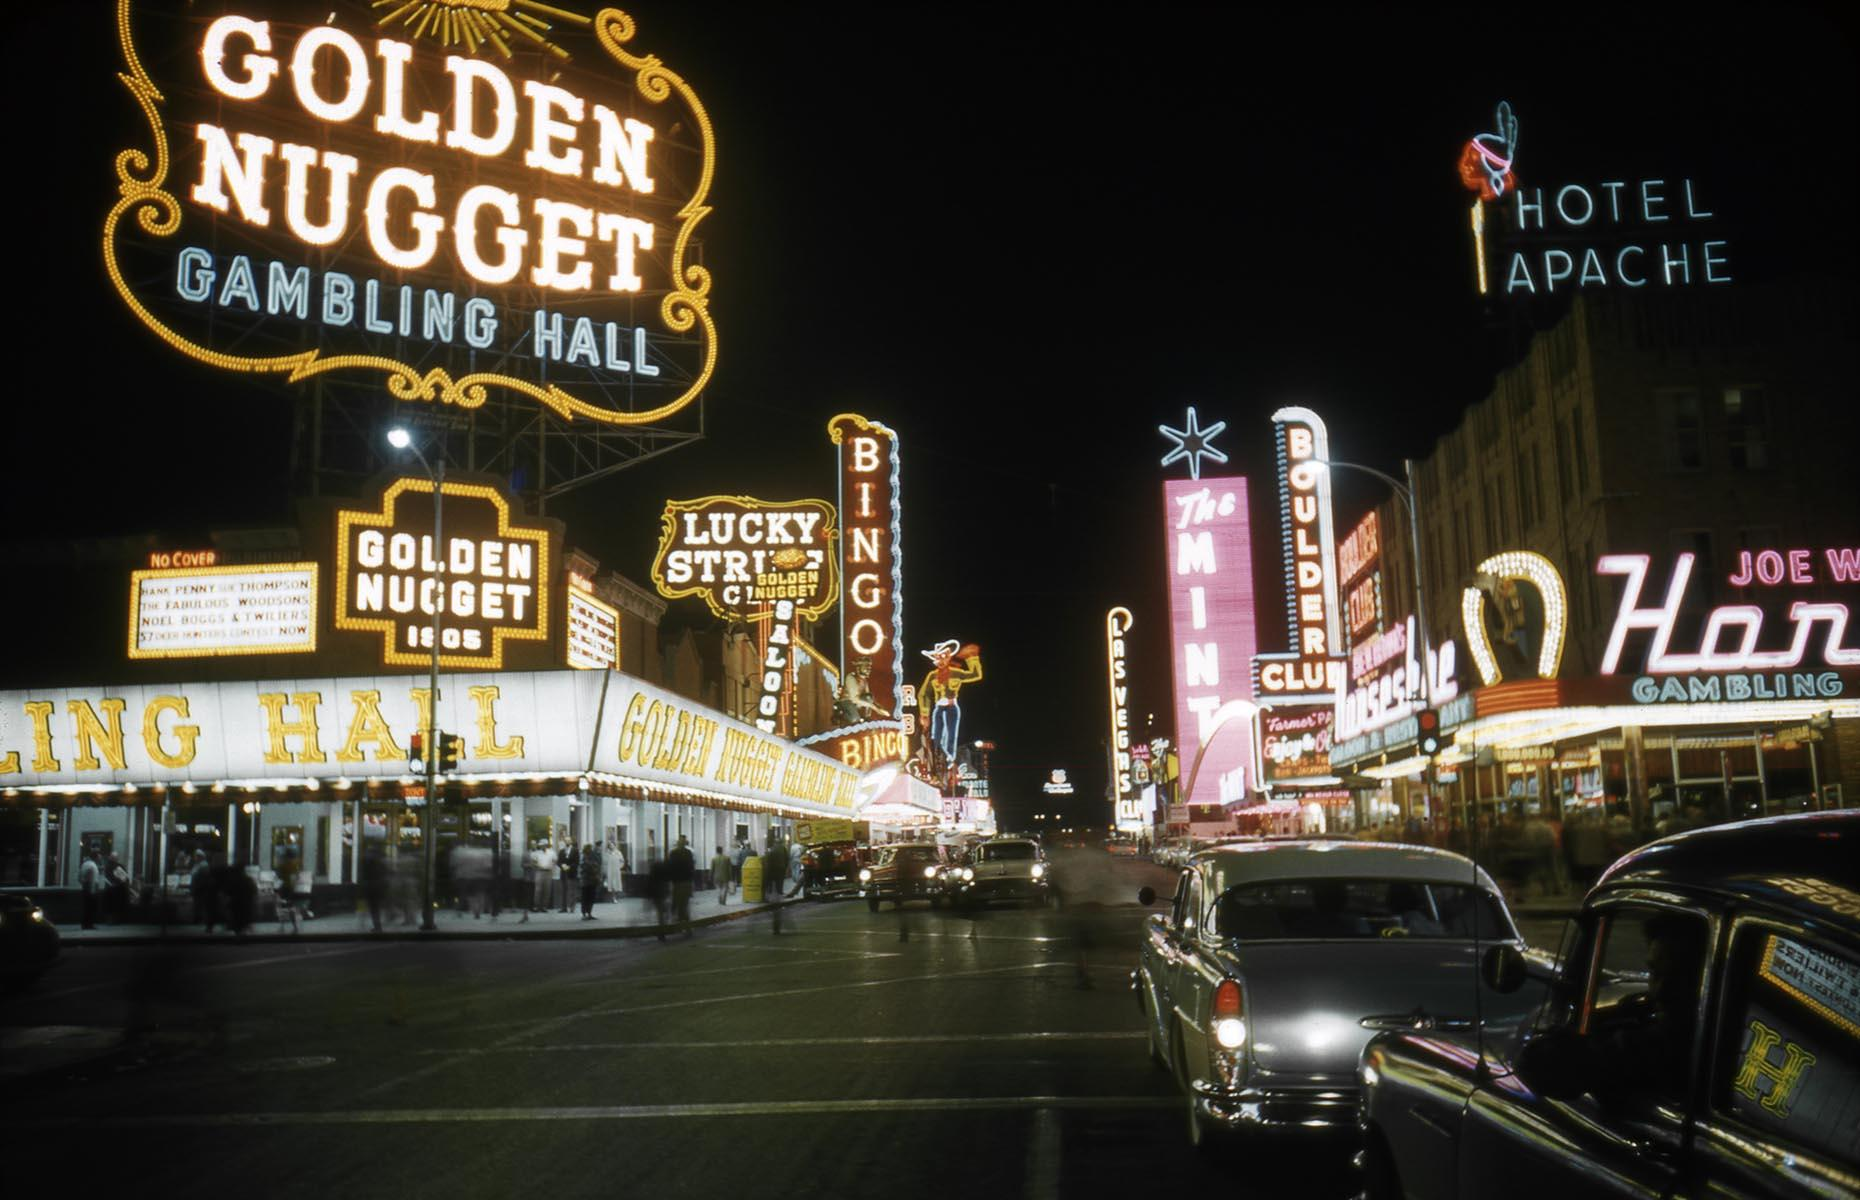 Slide 15 of 34: One of the oldest Las Vegas hotel-casinos still around today, Golden Nugget first opened its doors in 1946. Its massive neon sign instantly became an icon of Fremont Street (pictured here in 1958) and along with The Apache Hotel, El Cortez and The Mint, it became known as the Glitter Gulch thanks to the tall neon signs looming over the narrow street. The hotel has been featured on the big screen several times, including Elvis Presley's Viva Las Vegas and Diamonds Are Forever. Now check out these abandoned movie sets time forgot.